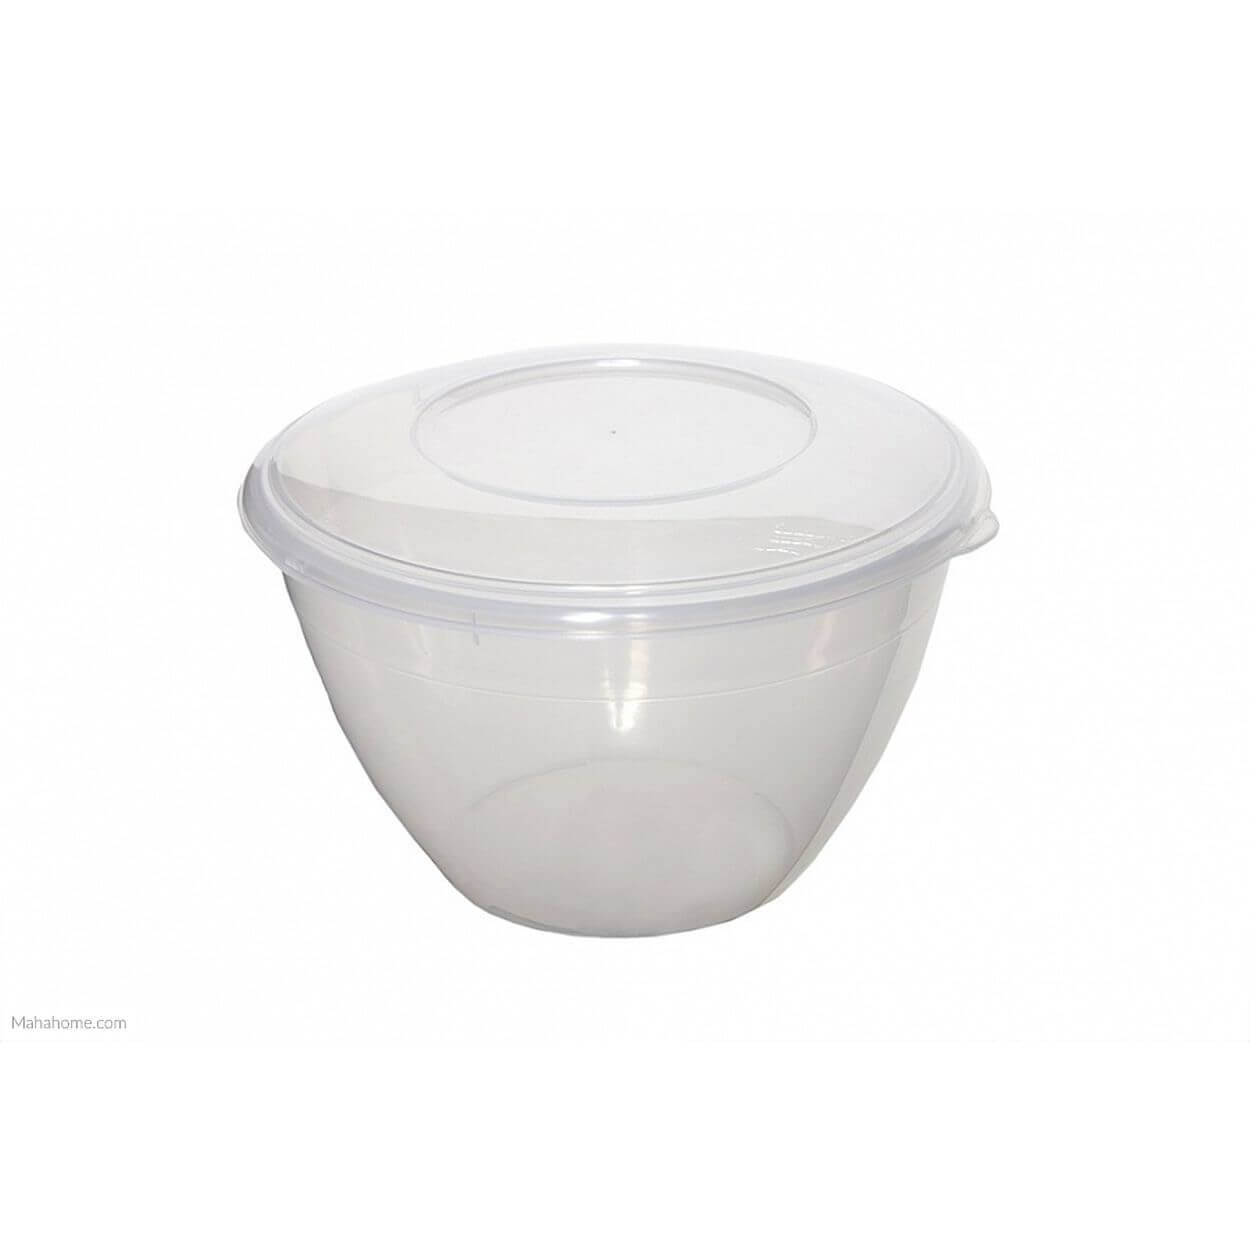 Whitefurze Pudding Bowl - Natural